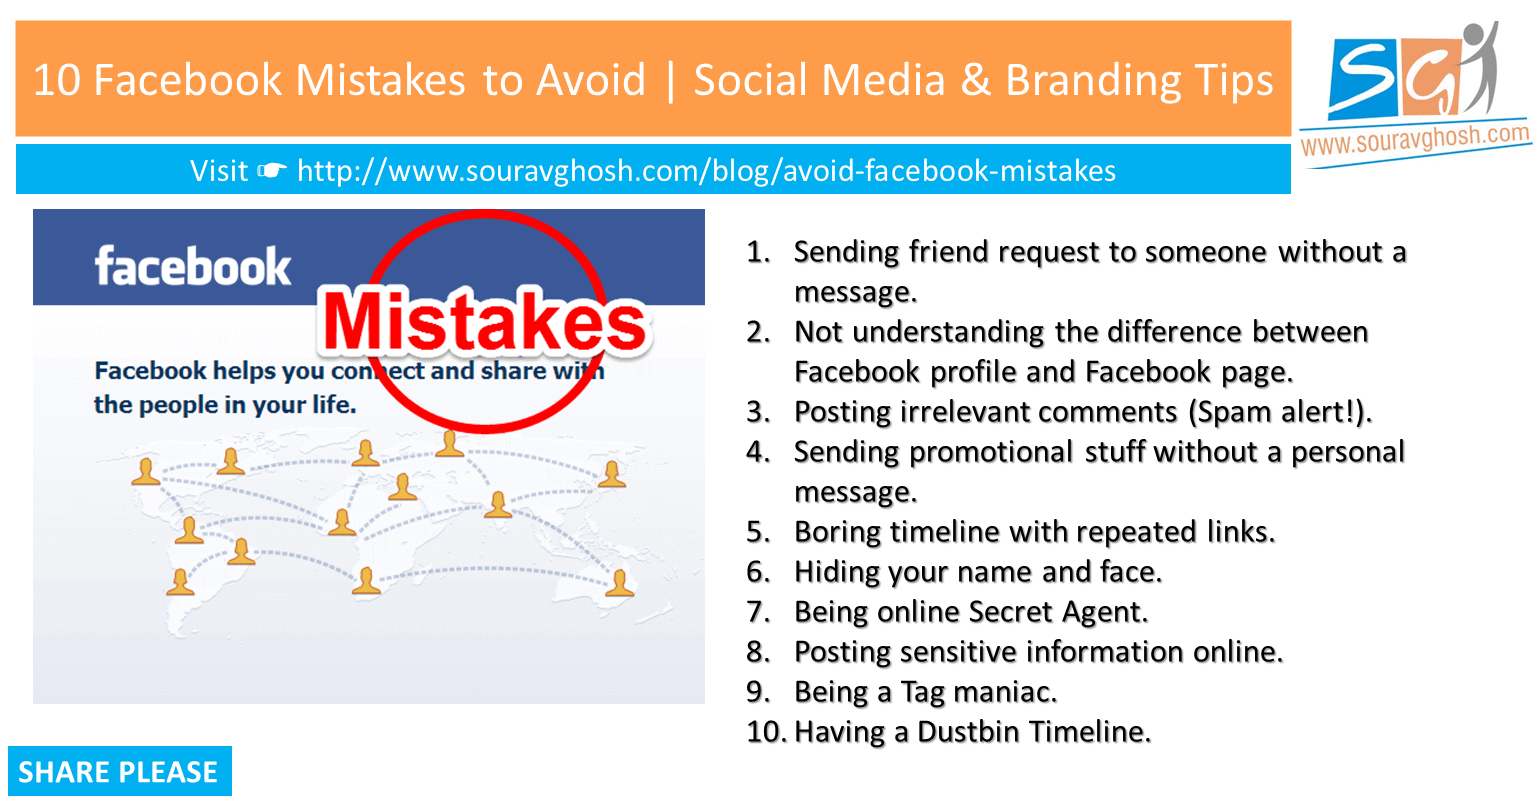 10 Facebook Mistakes to Avoid